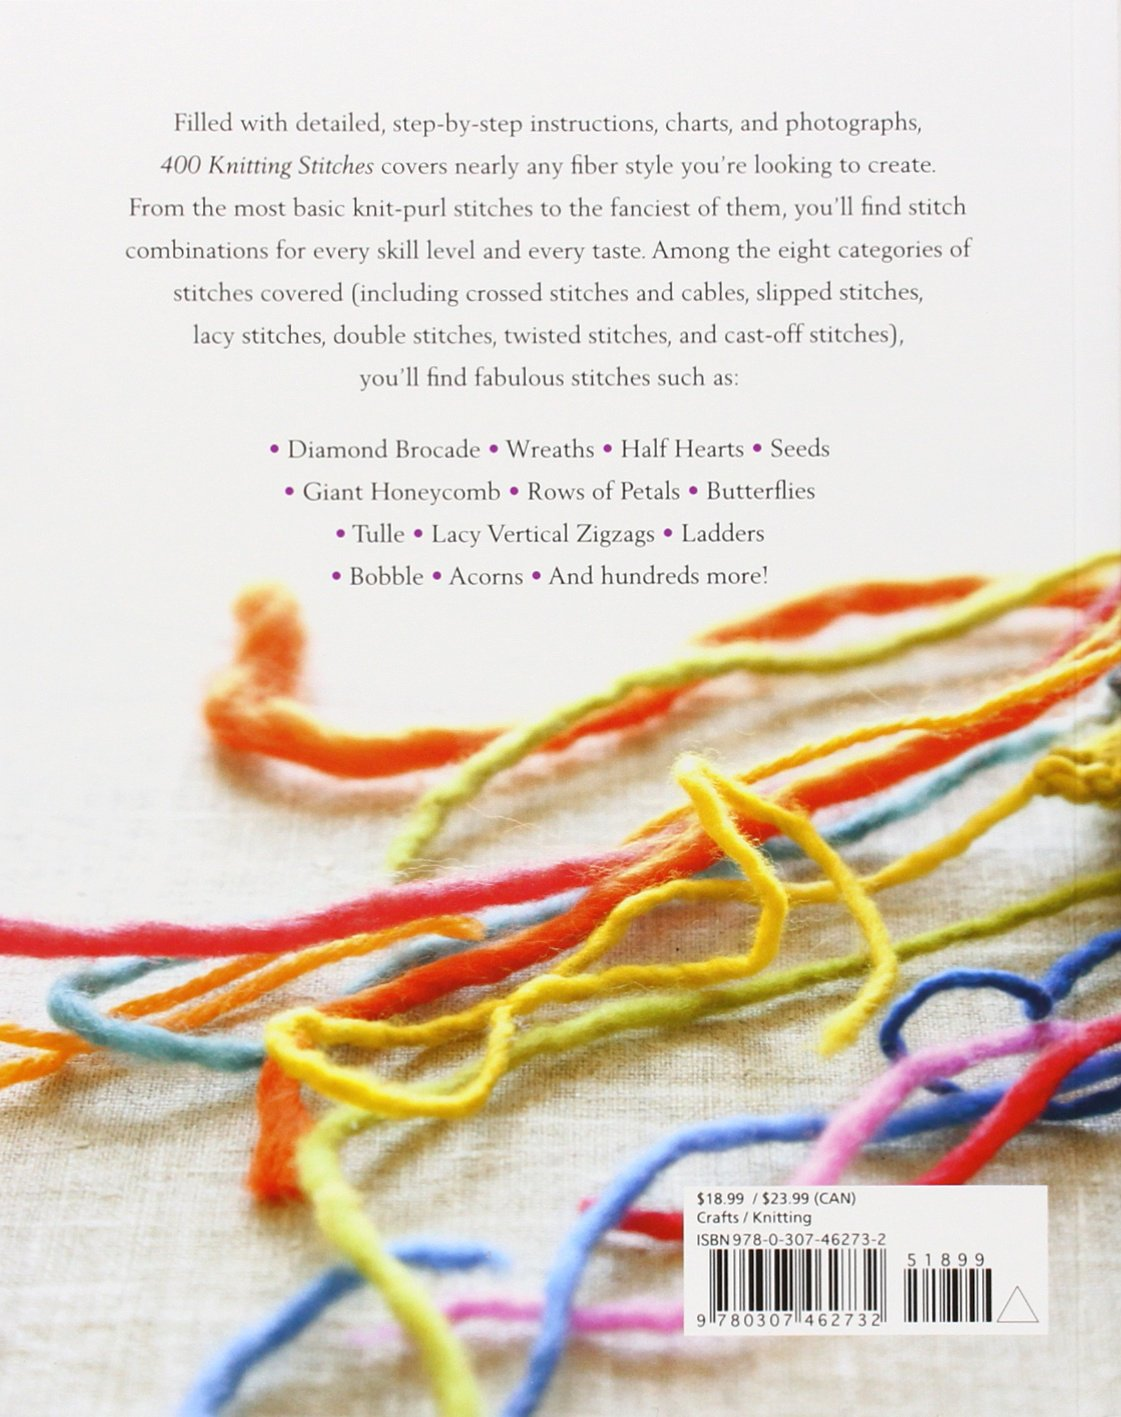 Amazon.com: 400 Knitting Stitches: A Complete Dictionary of ...